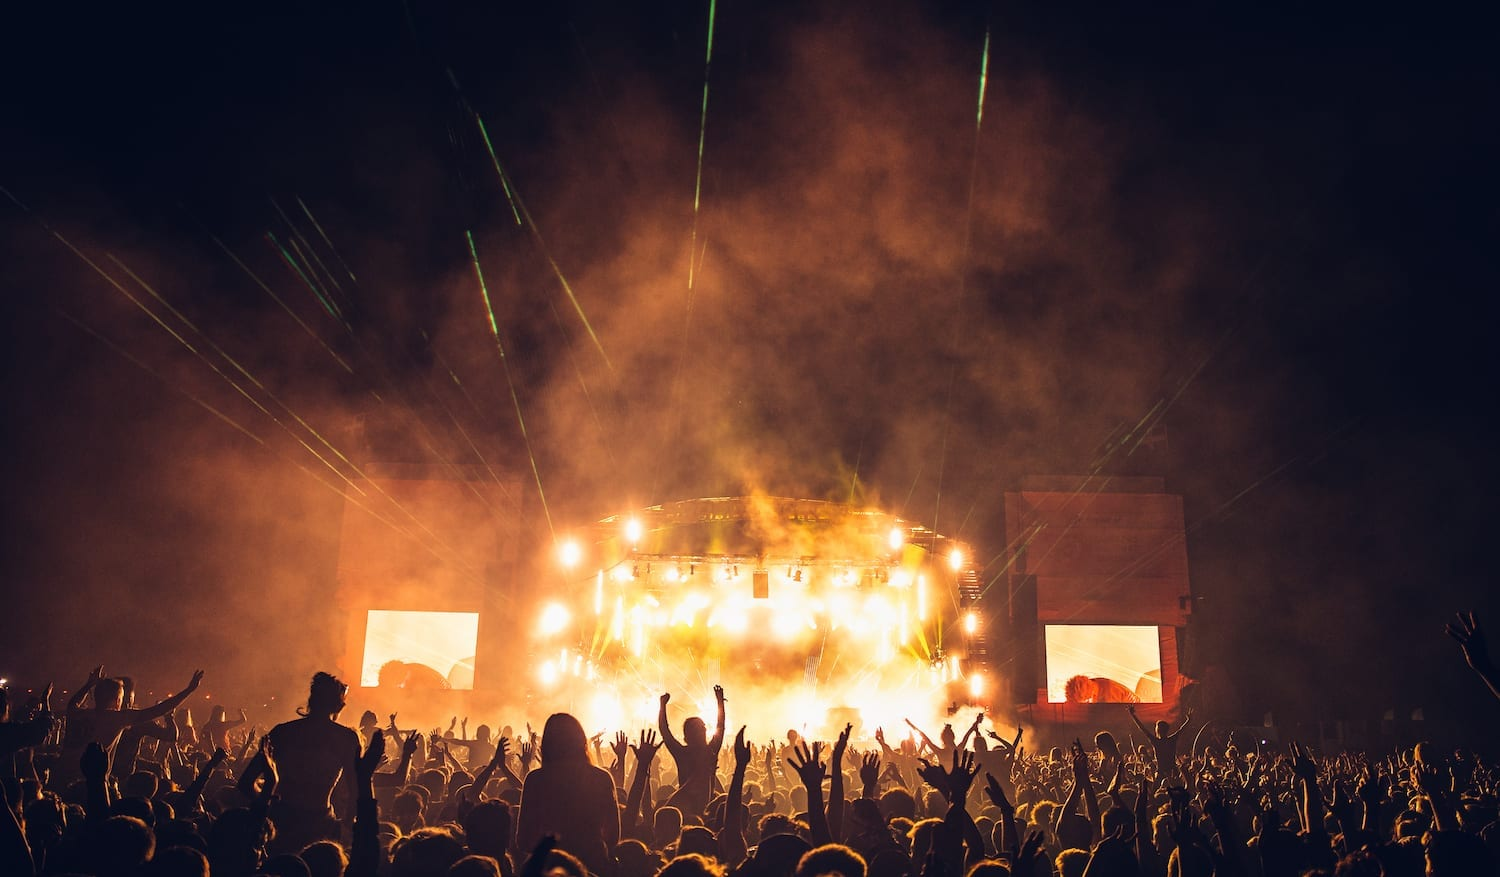 The Top 10 Acts You Should Check Out At Boardmasters